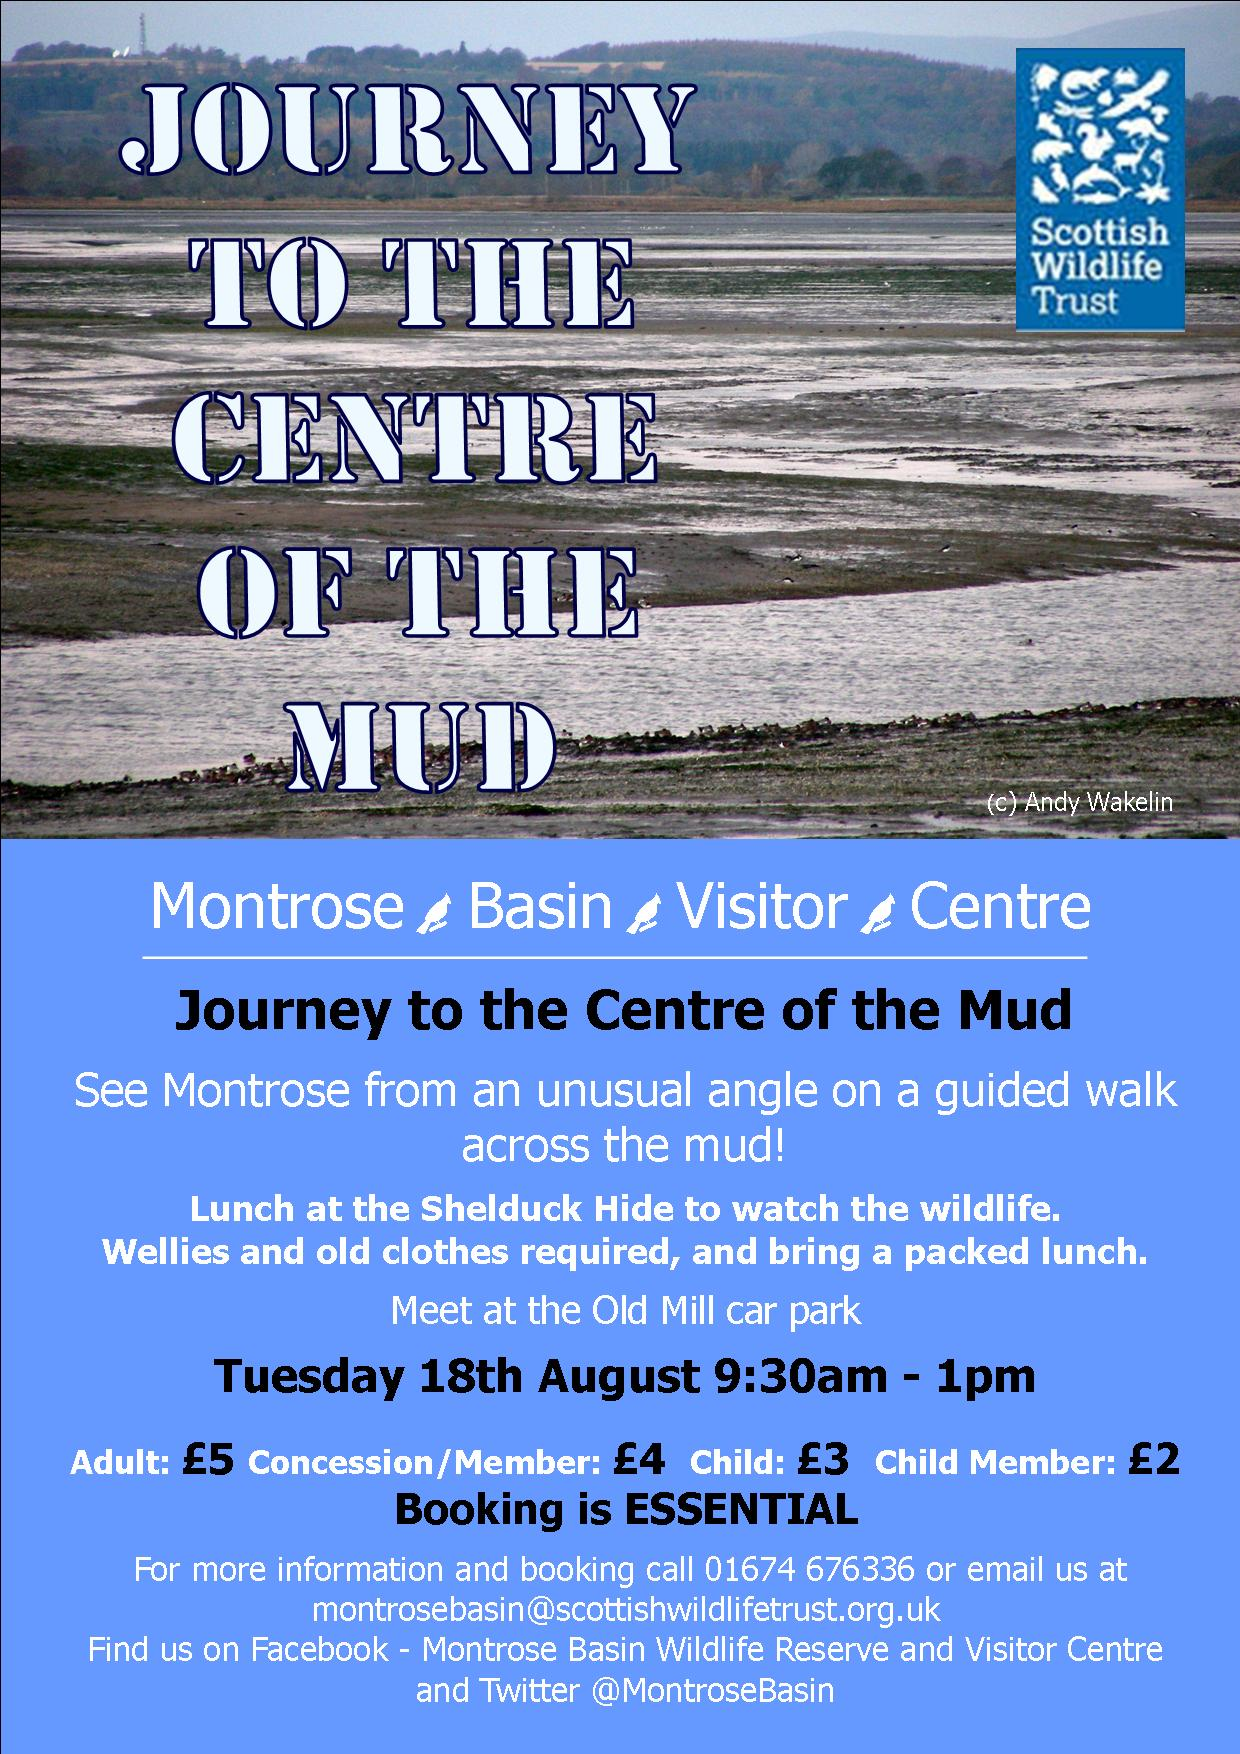 Journey to the centre of the mud